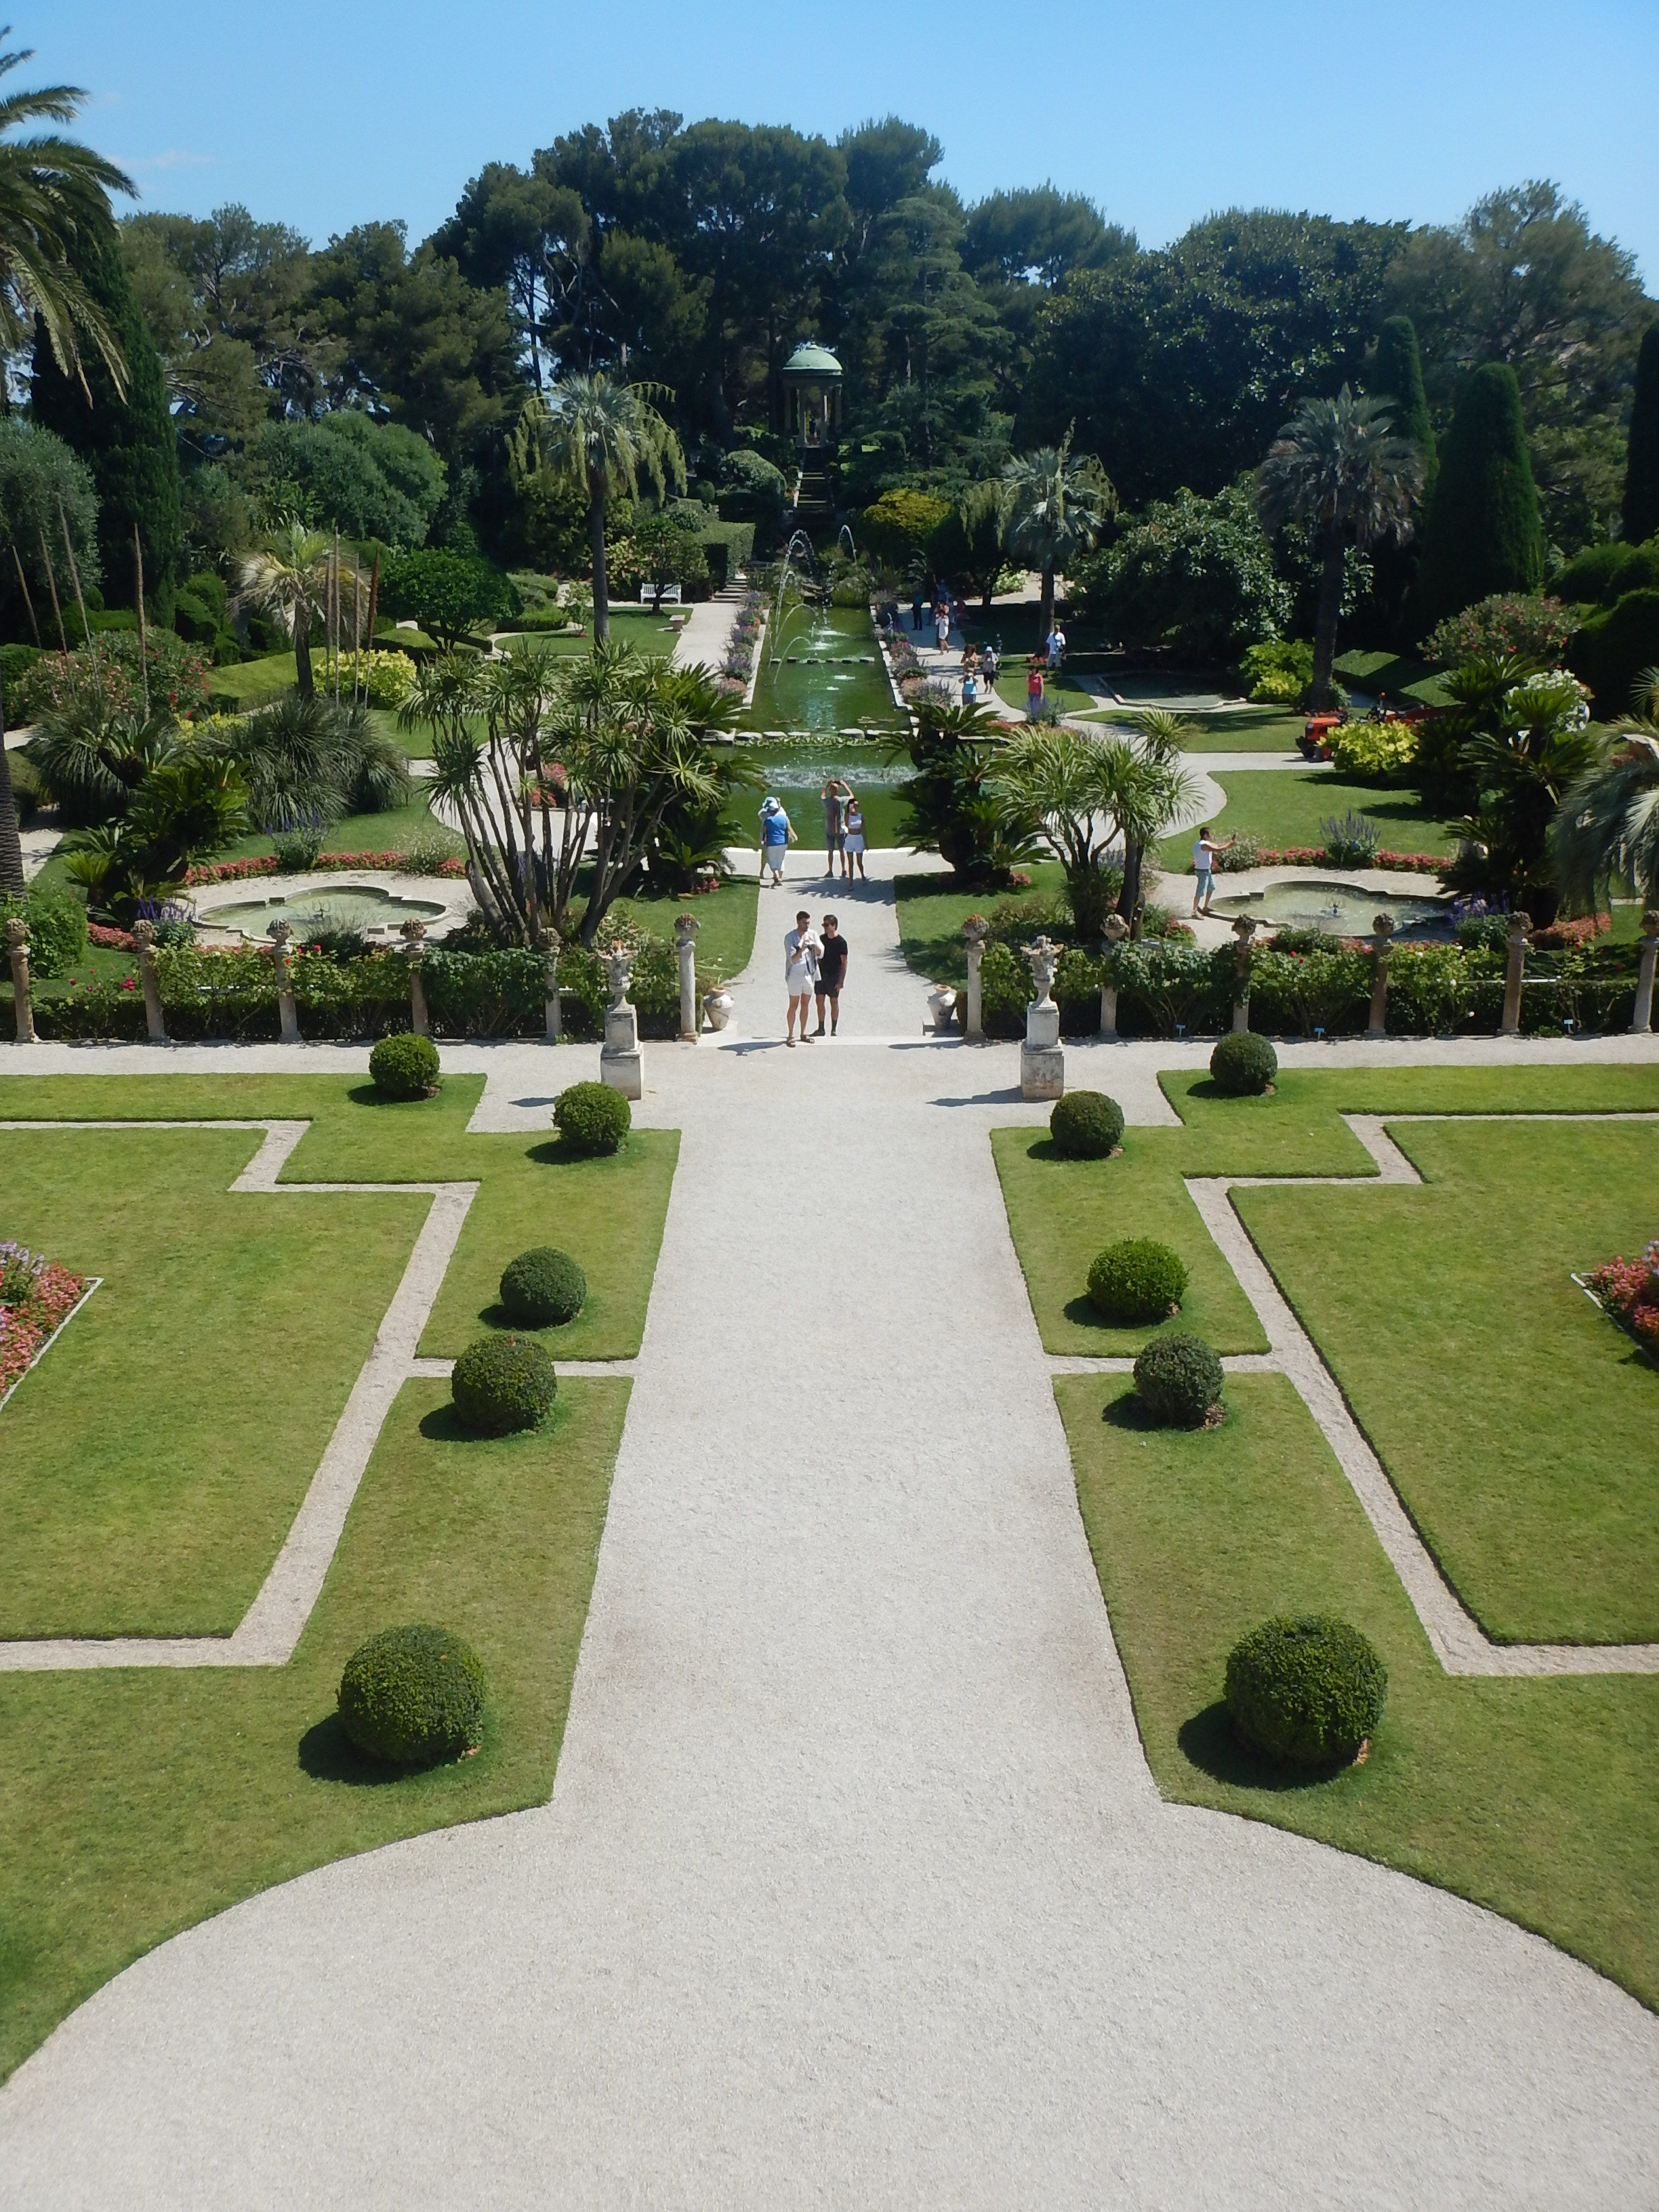 Part of the formal gardens from the upstairs window. The fountains dance to classical music, softly and gently.